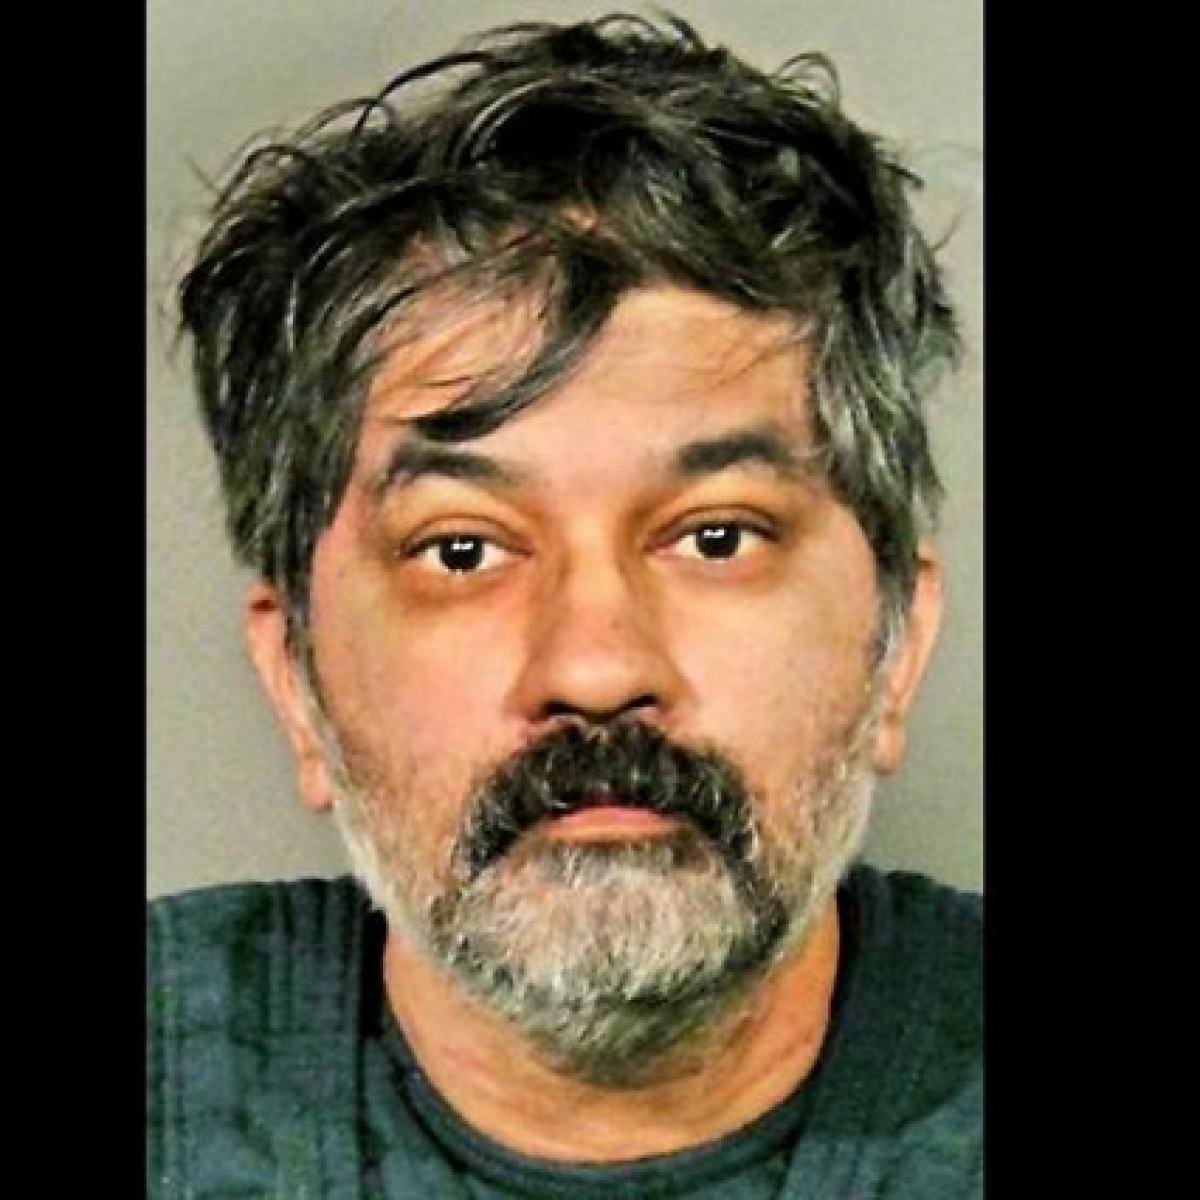 Indian-American techie walks into police station with dead body, admits to killing 3 others